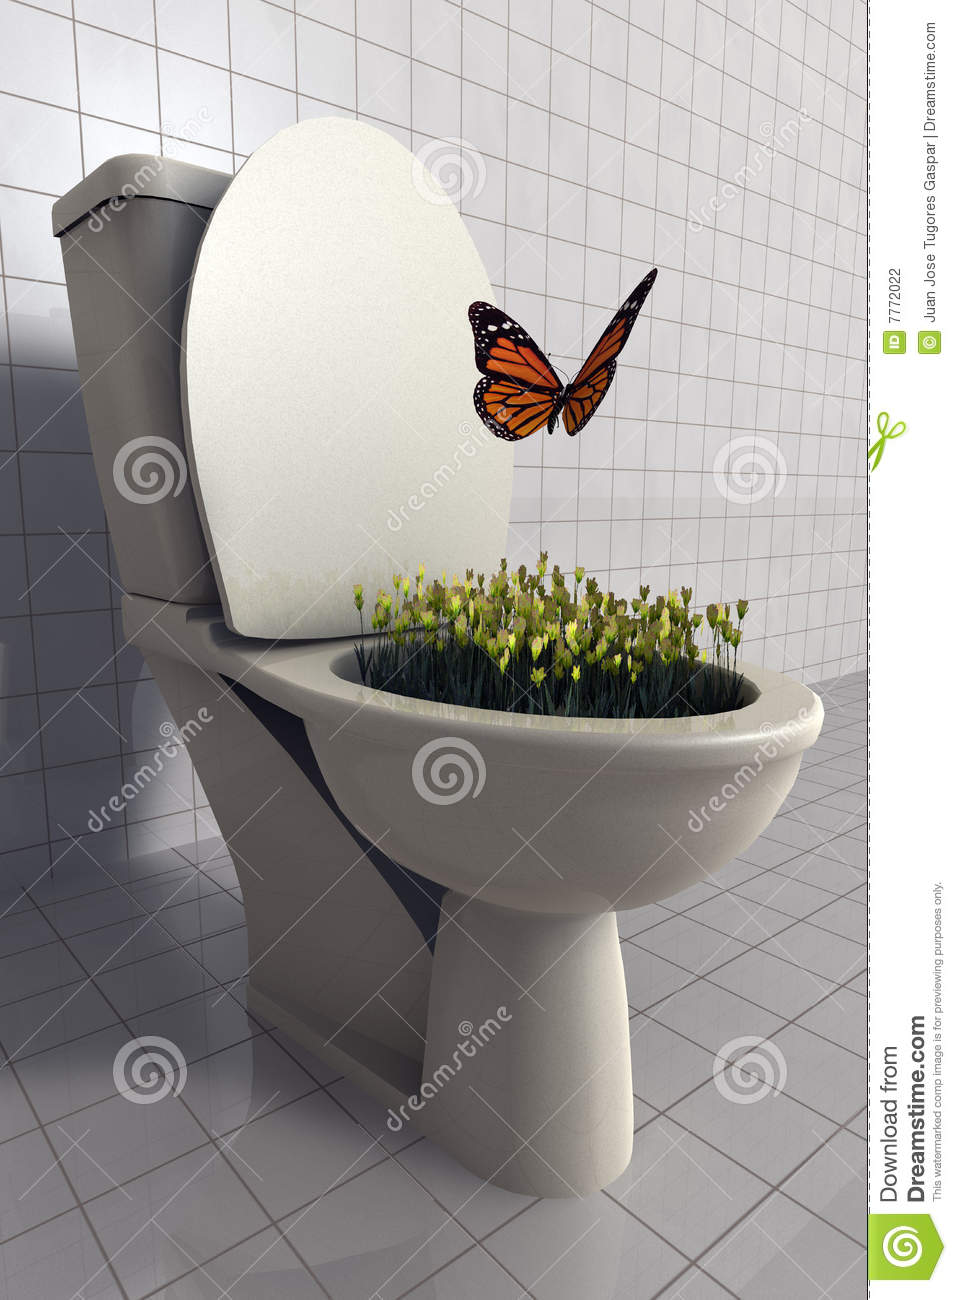 Flowers Growing In Toilet Stock Photography  Image 7772022